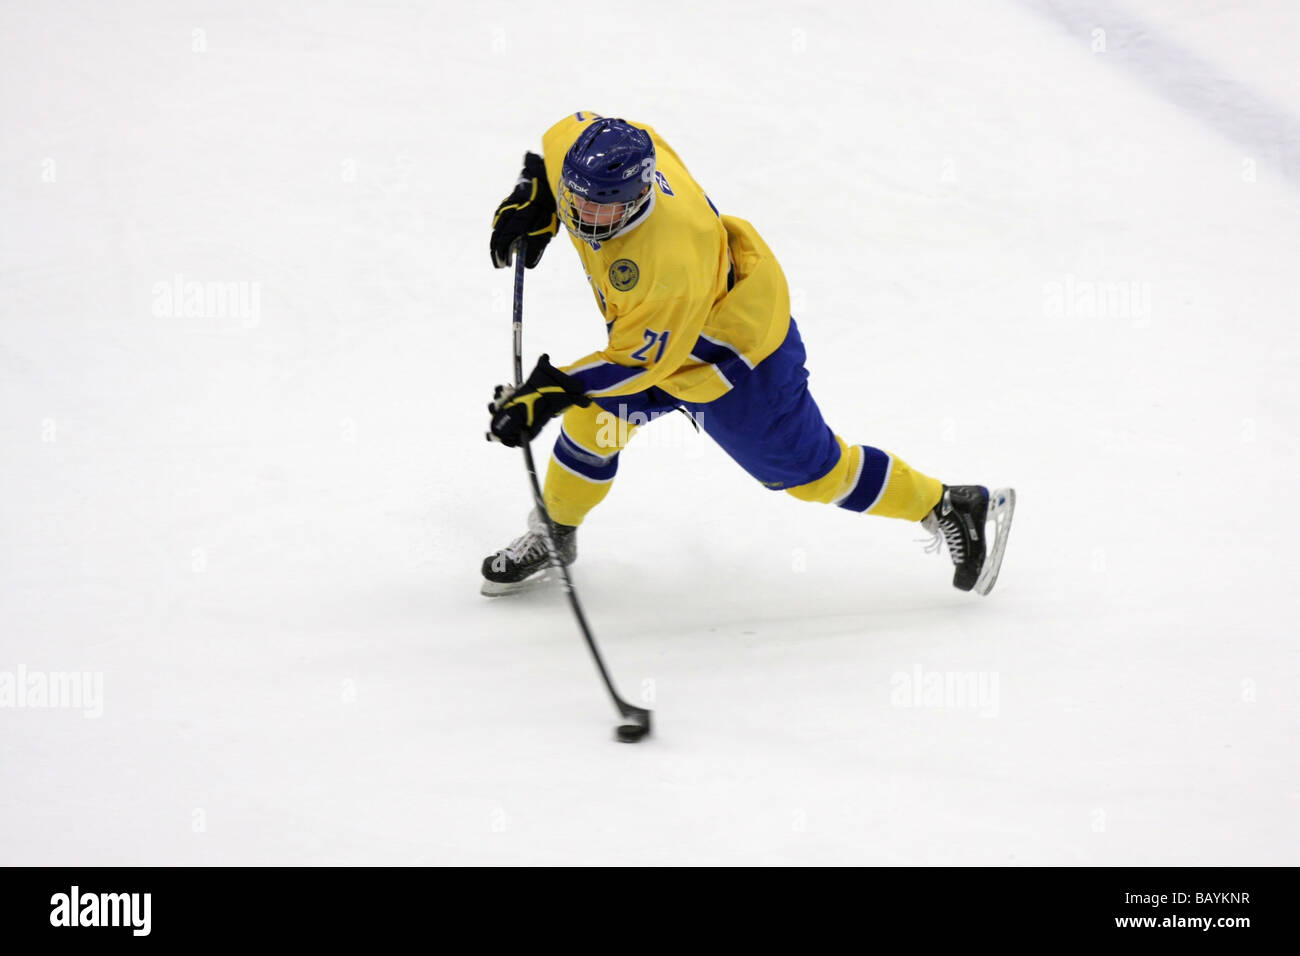 Swedish player no 21 Hampus Gstafsson firing away a shot. In this photo you can see how a composite stick is bent - Stock Image